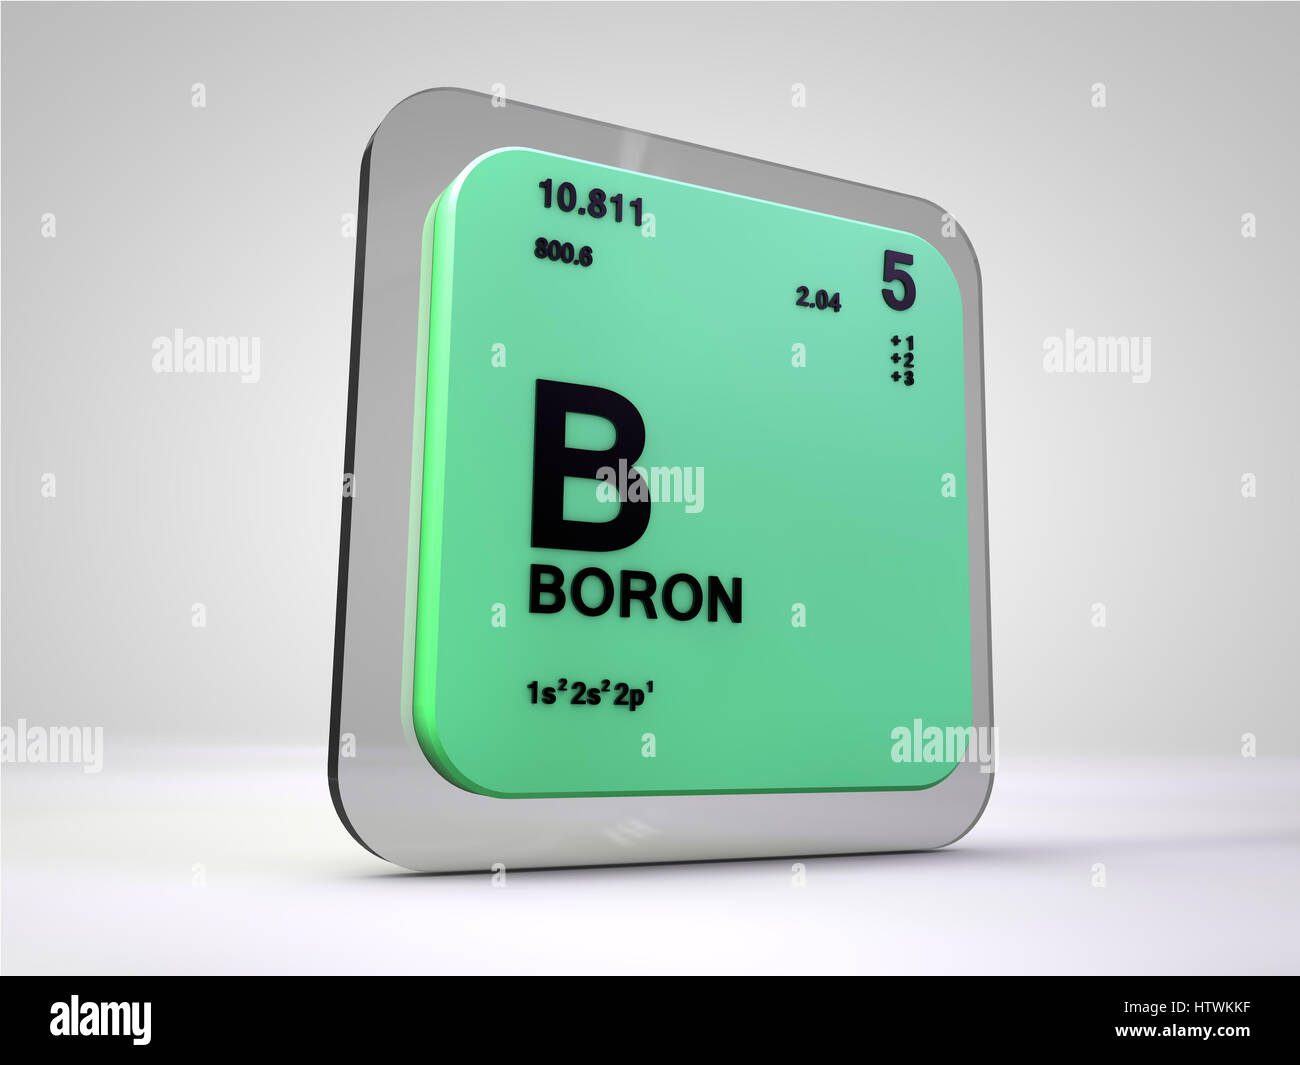 Boron b chemical element periodic table 3d render stock photo boron b chemical element periodic table 3d render gamestrikefo Choice Image